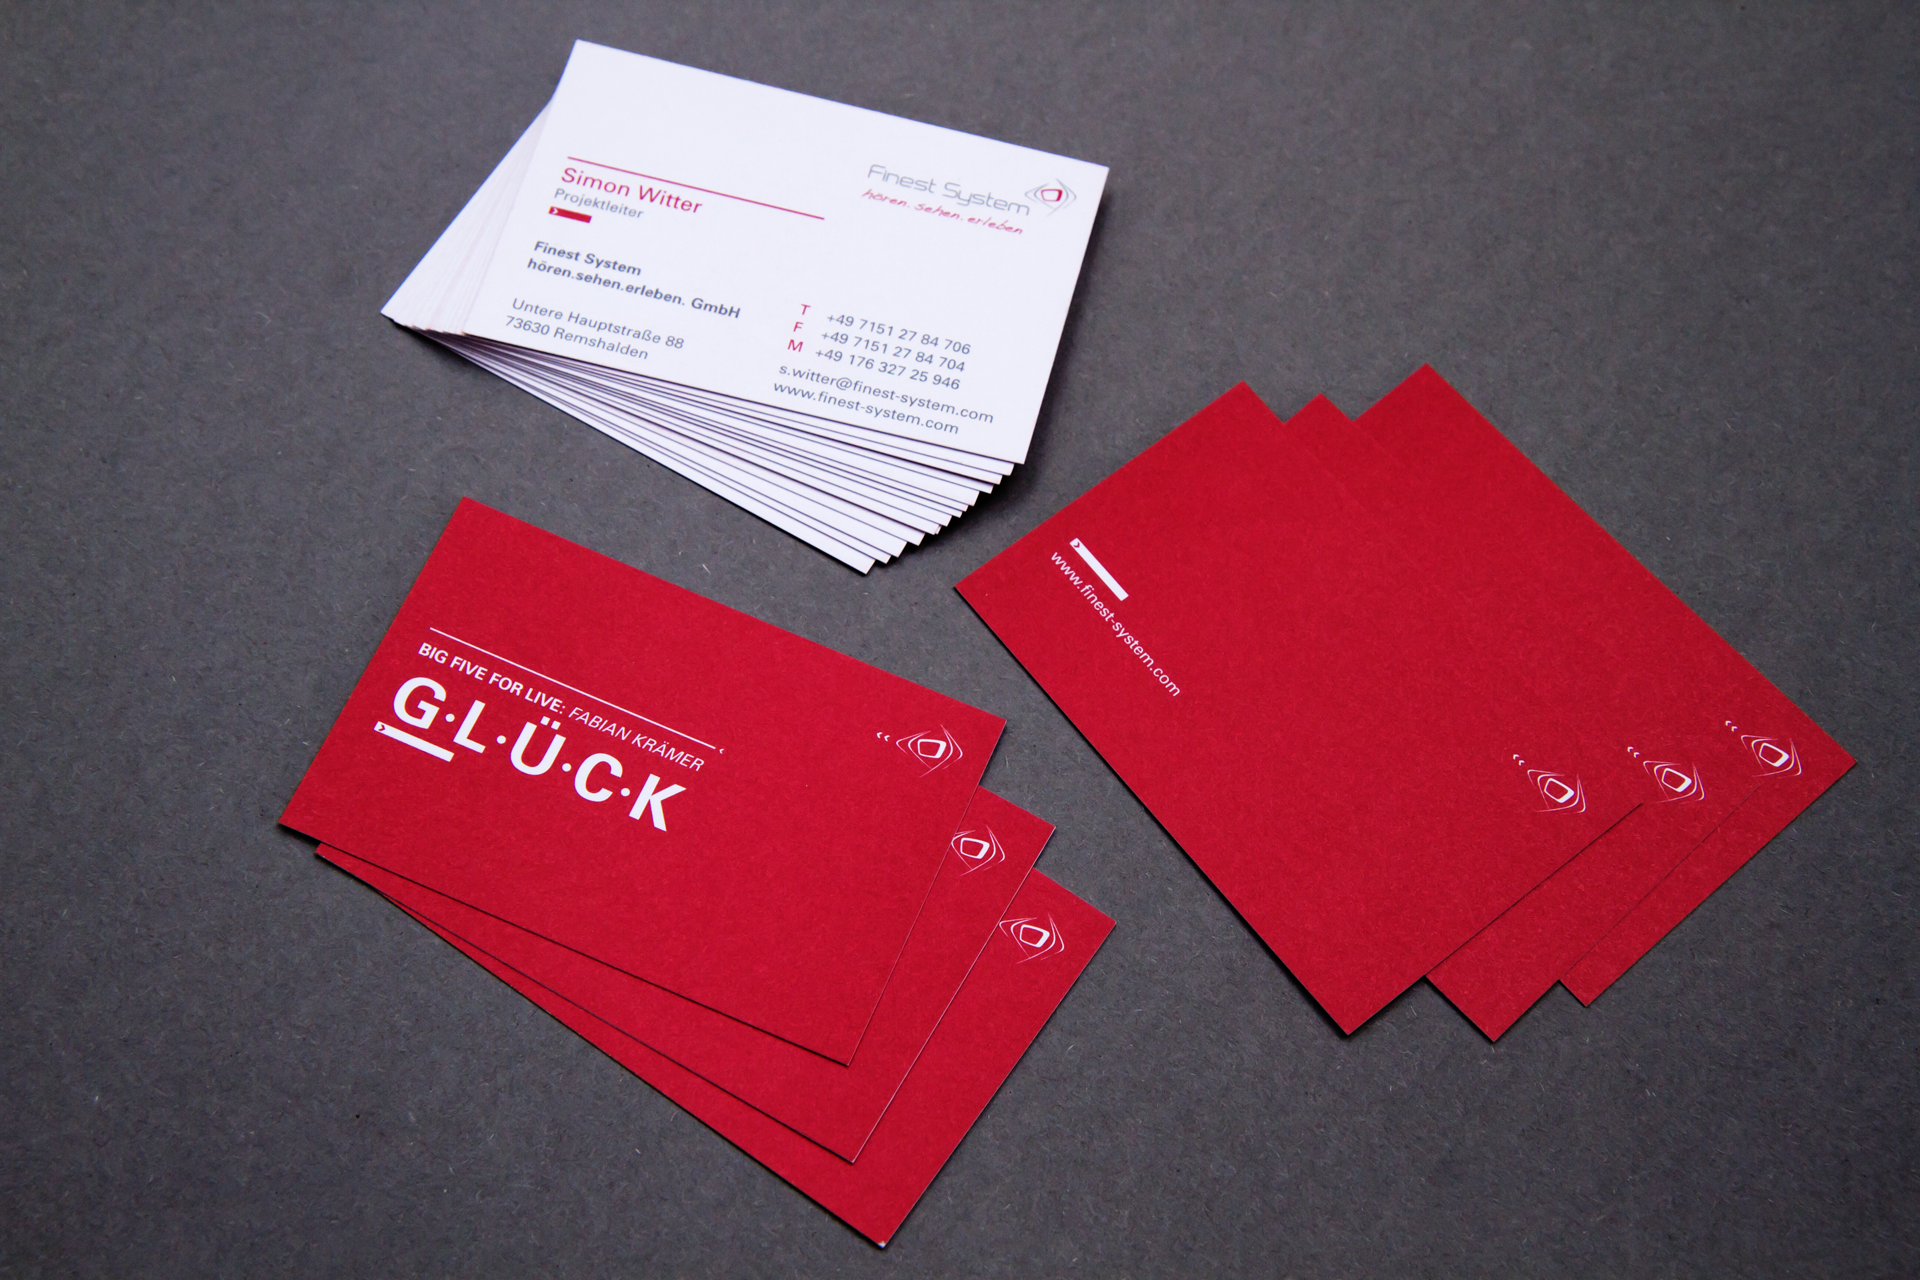 finest_system_businesscard